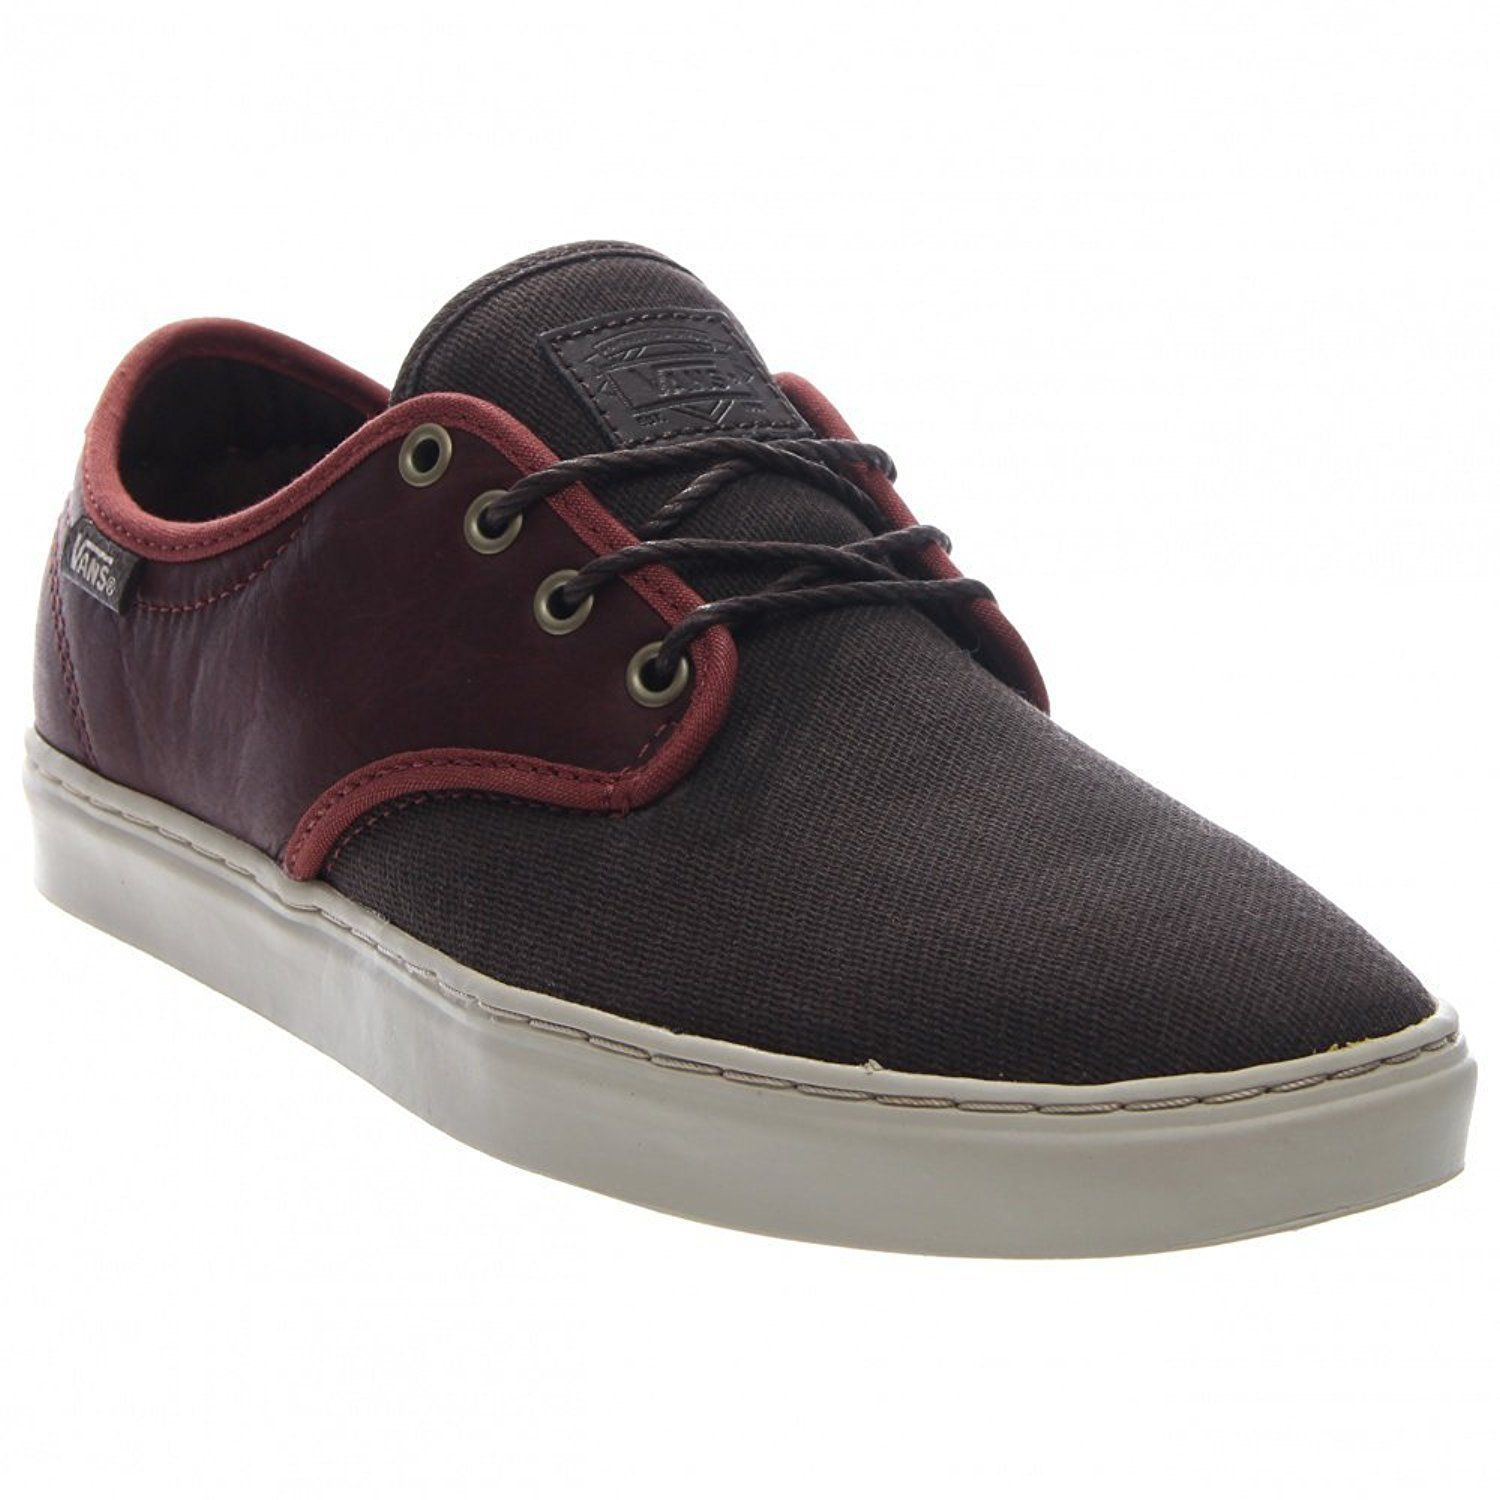 VANS OTW COLLECTION LUDLOW + LEATHER HENNA BROWN SHOES MENS SZ 7.5 BURGUNDY